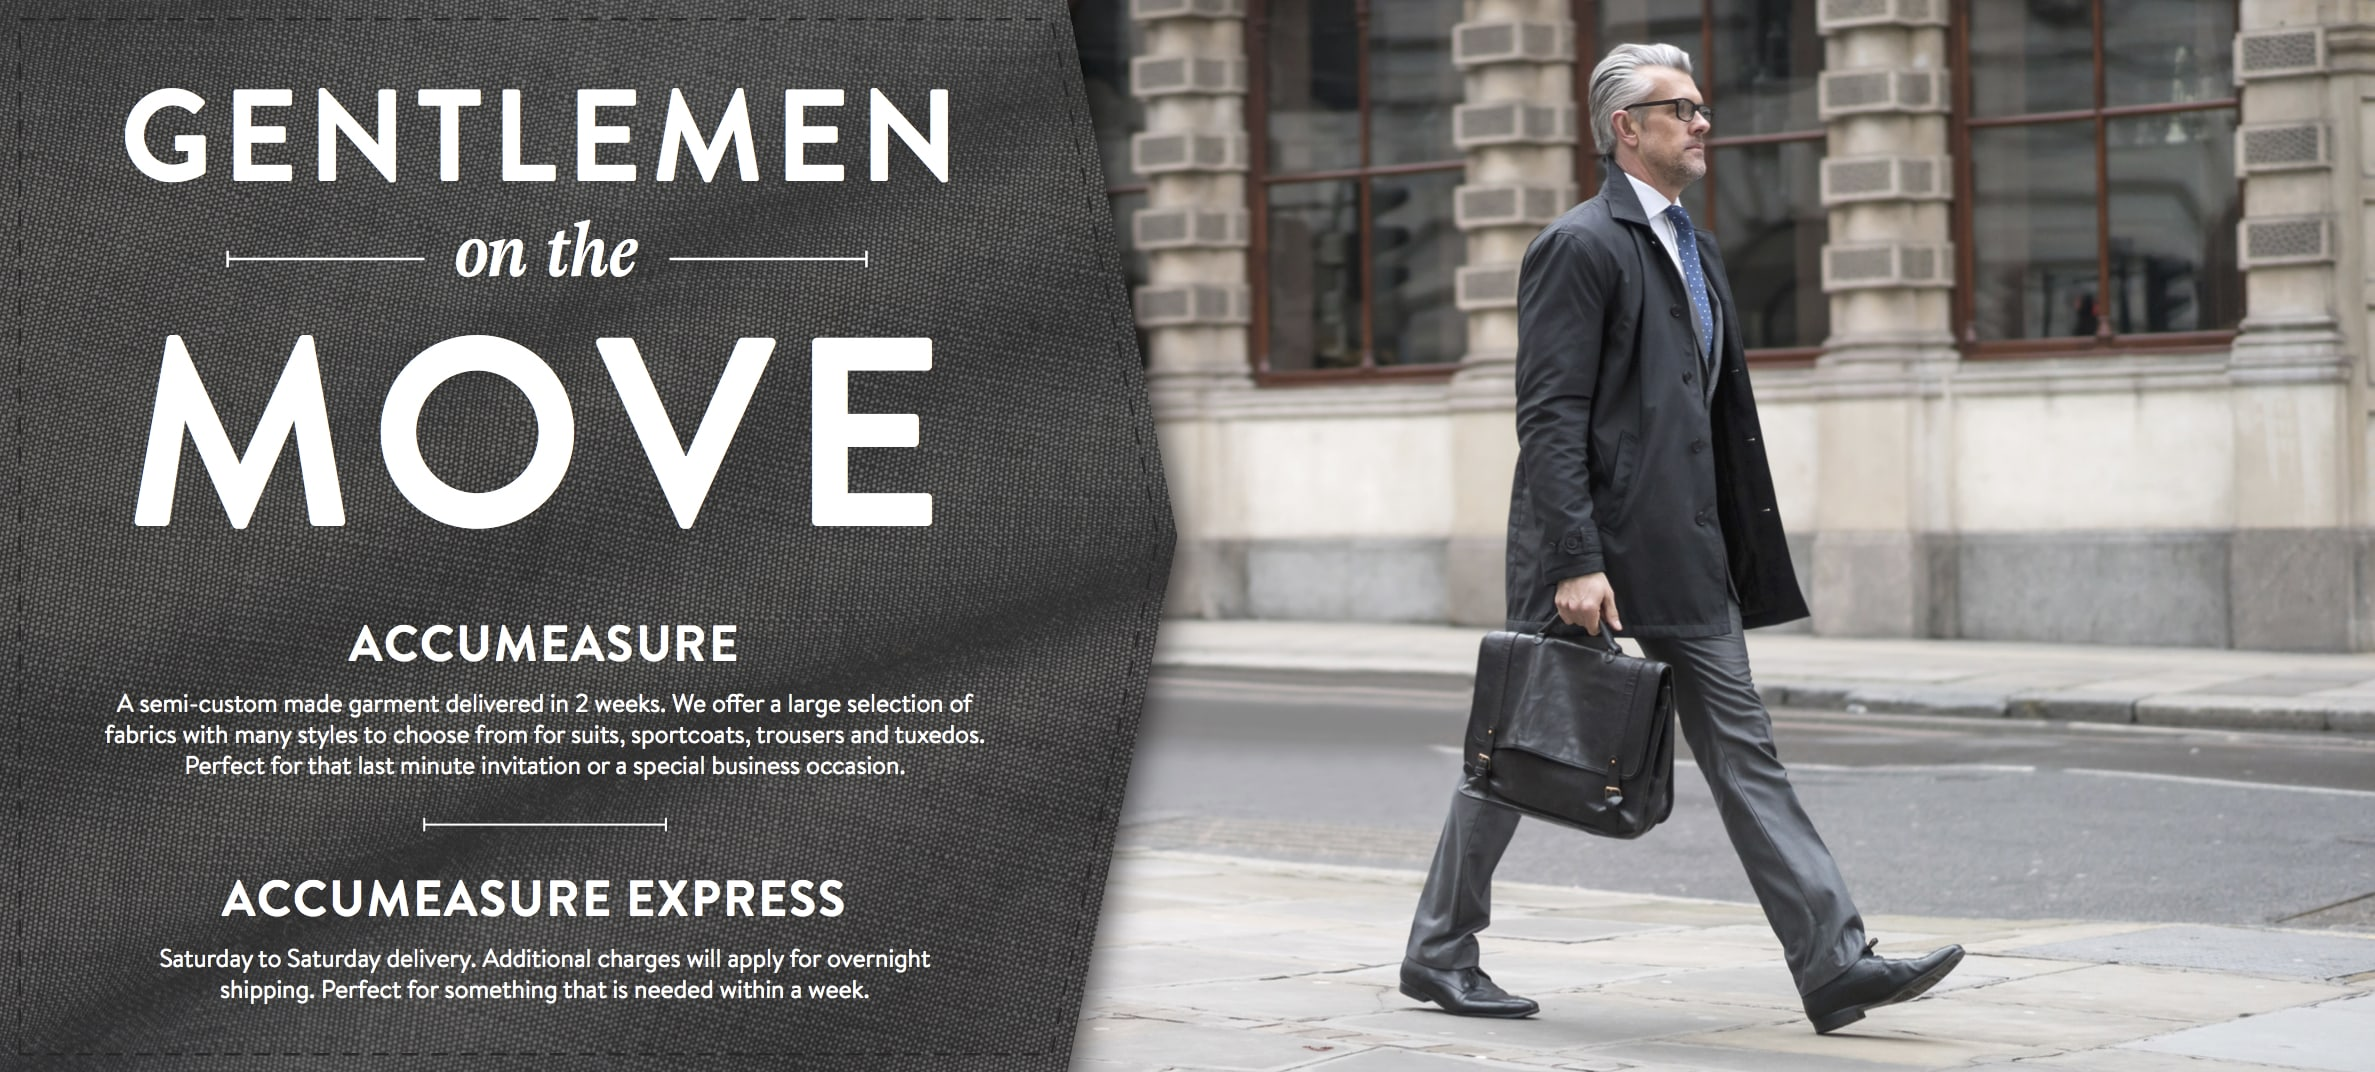 Gentlemen on the move